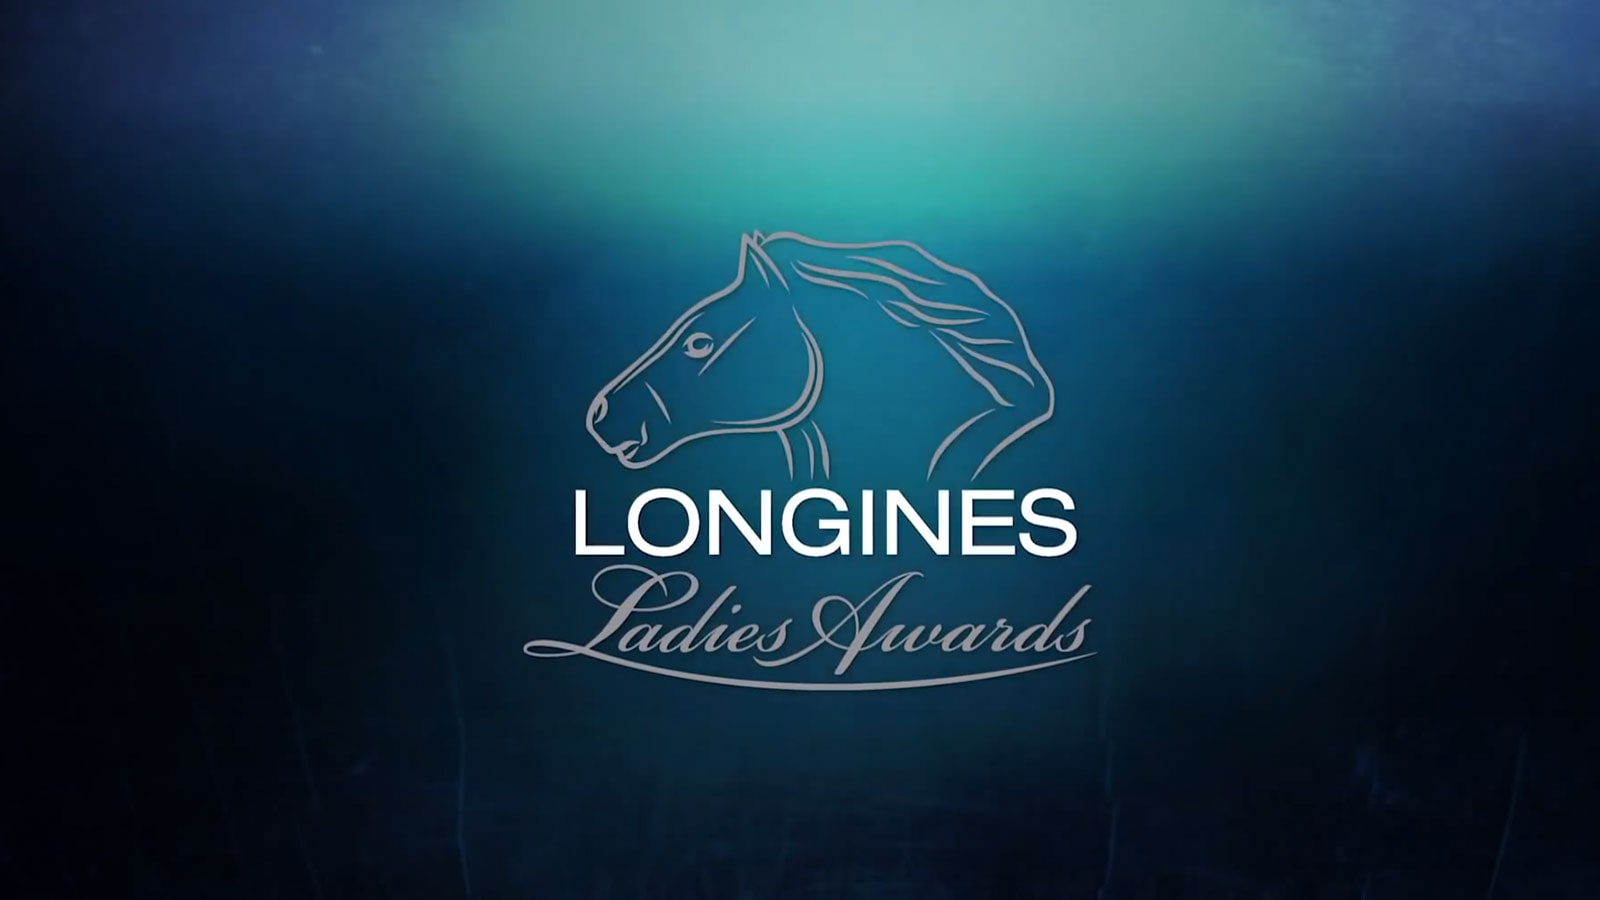 Video Longines Ladies Awards 2014